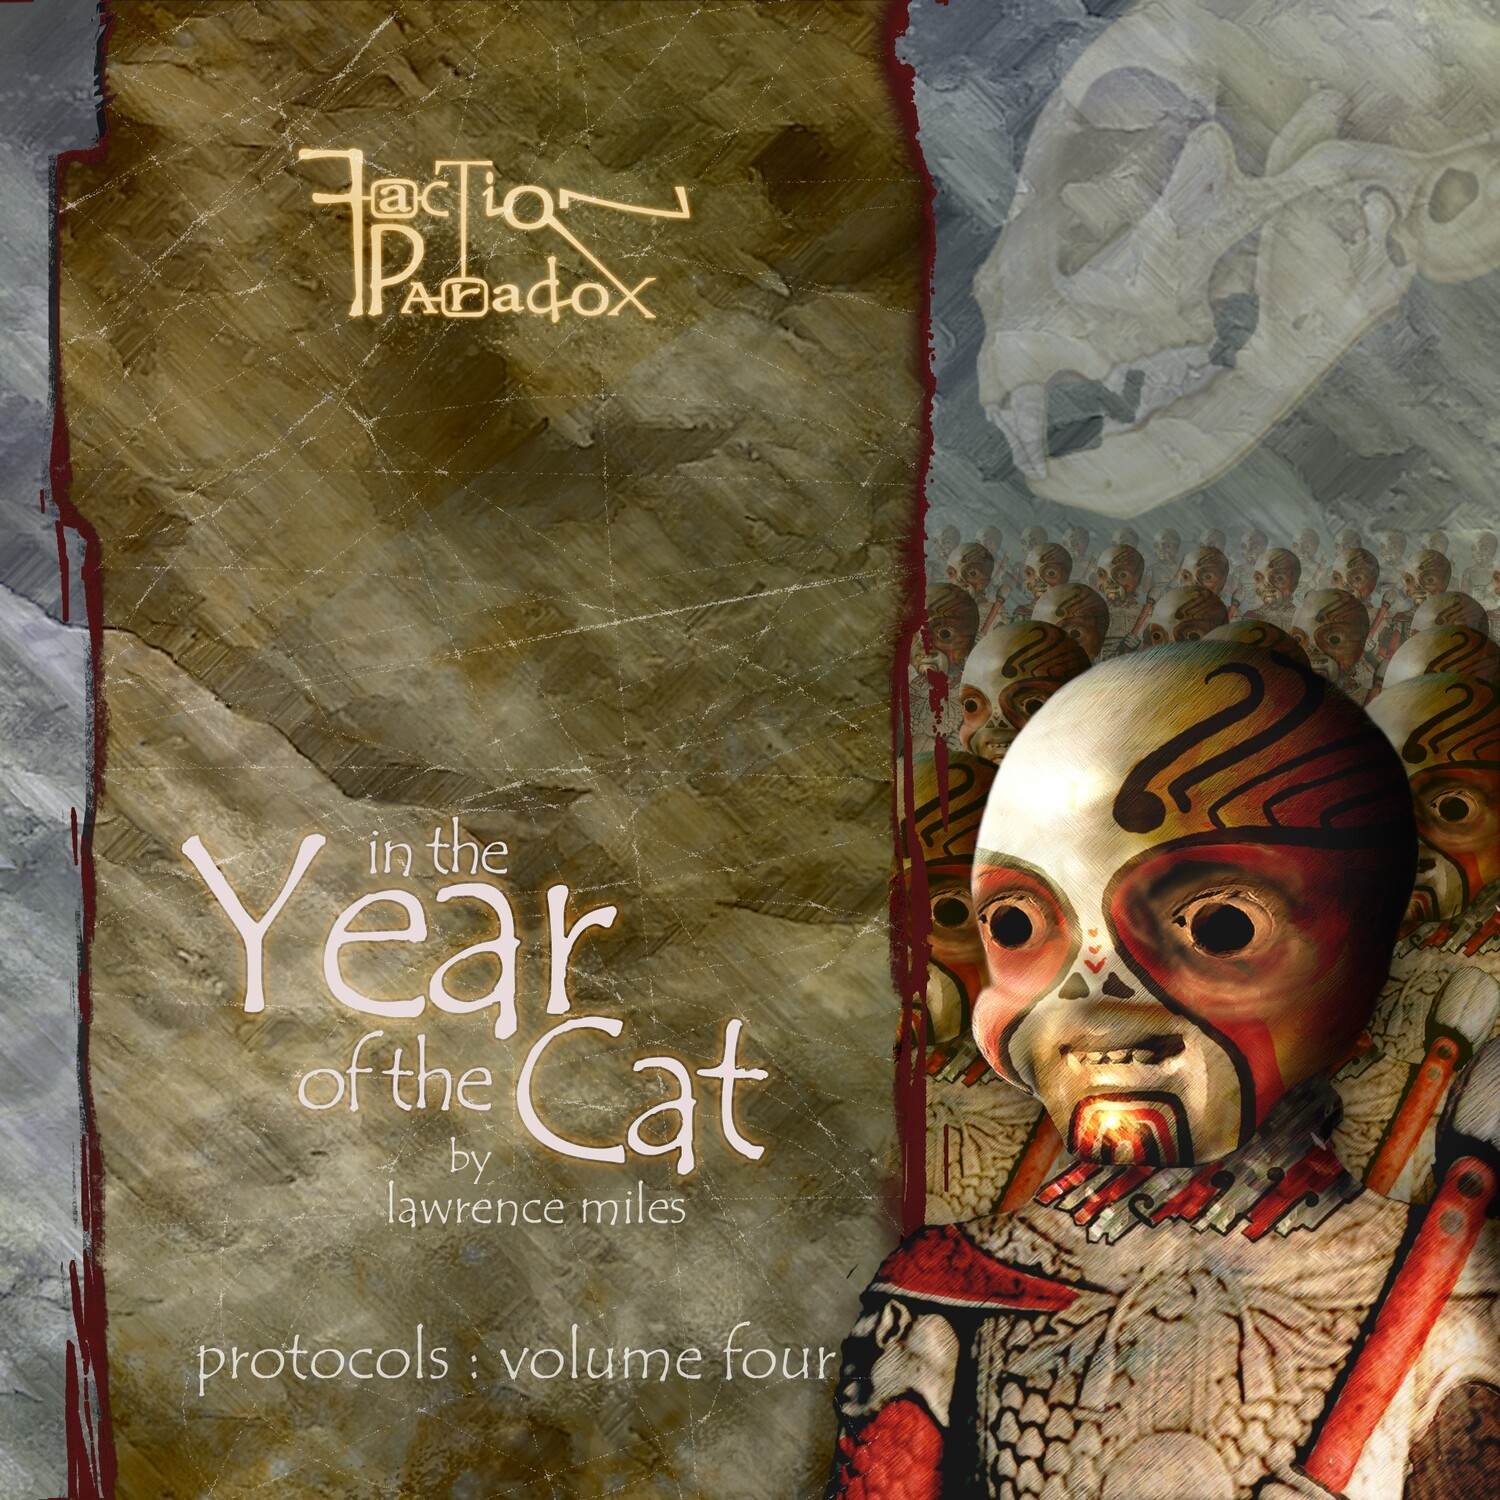 Faction Paradox: In the Year of the Cat (AUDIO DOWNLOAD)